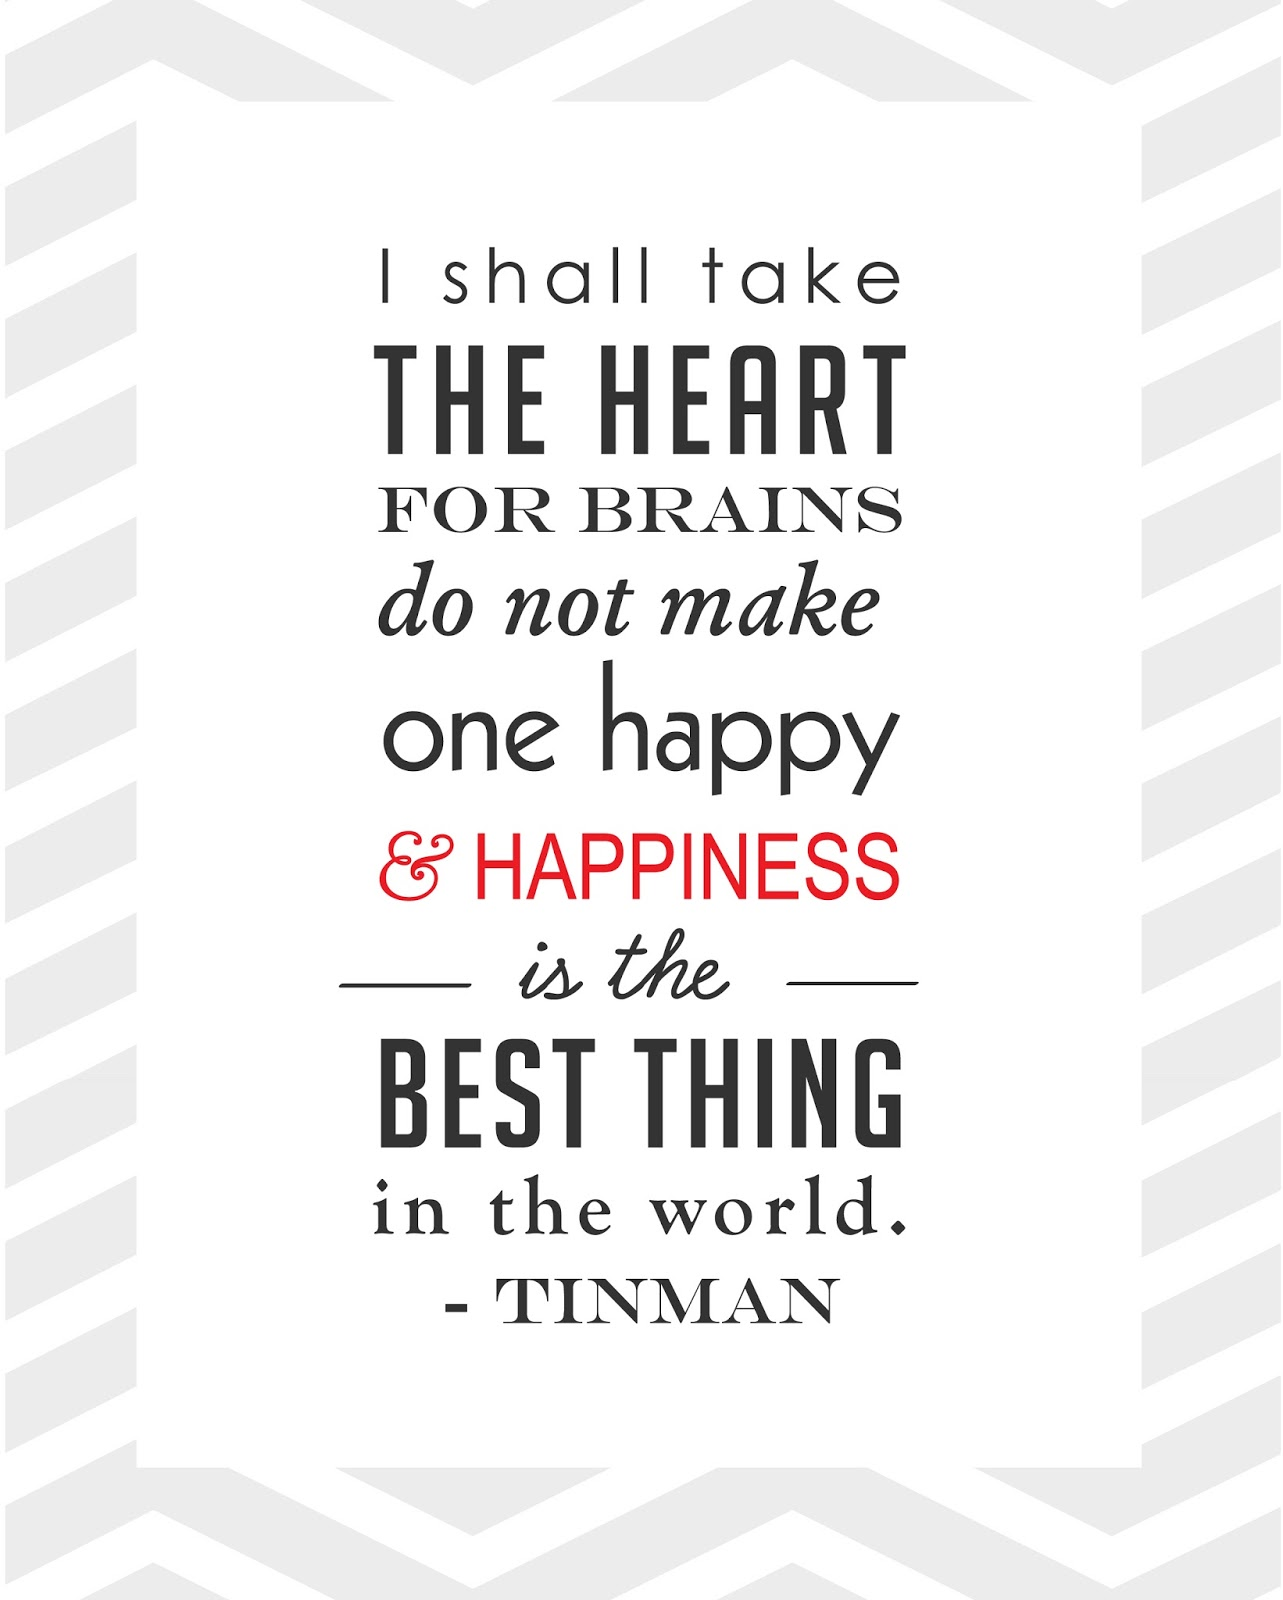 Wizard of oz quotes - Well Dorothy And The Tinman Got Me Thinking About How I Designed Some Wizard Of Oz Quotes Within The Last Year So I Thought I Would Put Them Up Here To